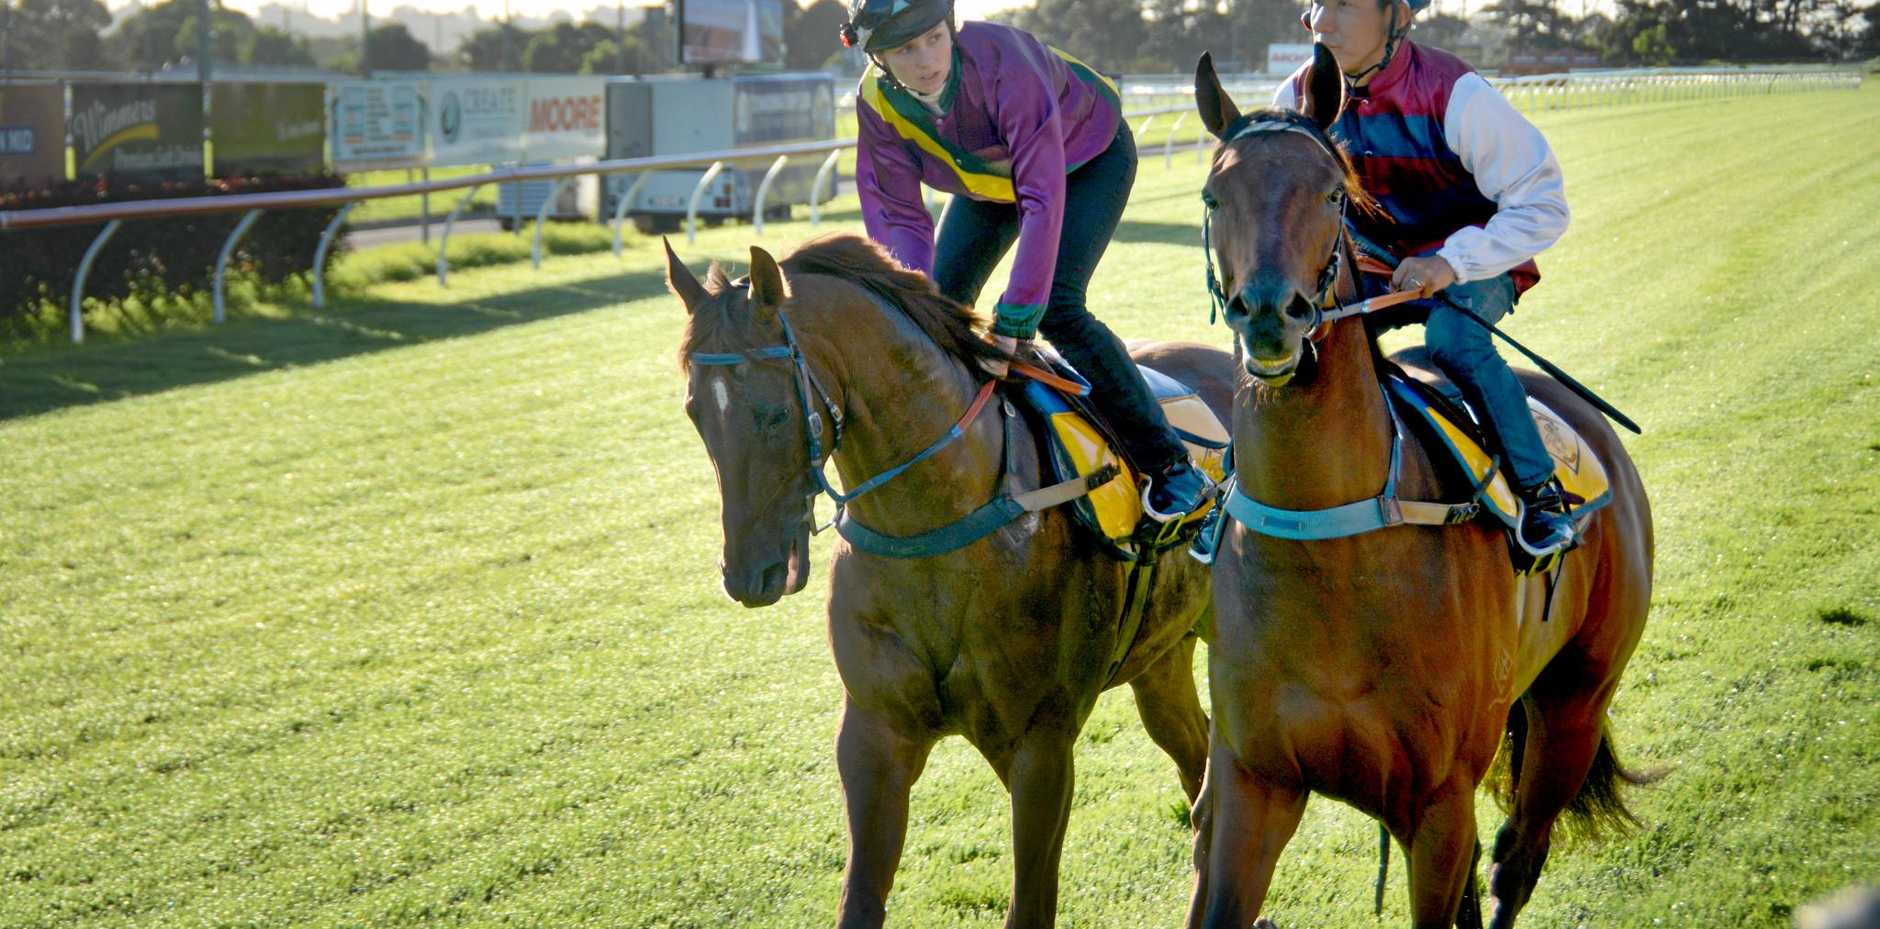 Weetwood Handicap candidate In His Stride (right) and jockey Kenji Yoshida prepare to gallop at this morning's Clifford Park Breakfast With The Stars with stable mate Real Ego (Bec Williams).